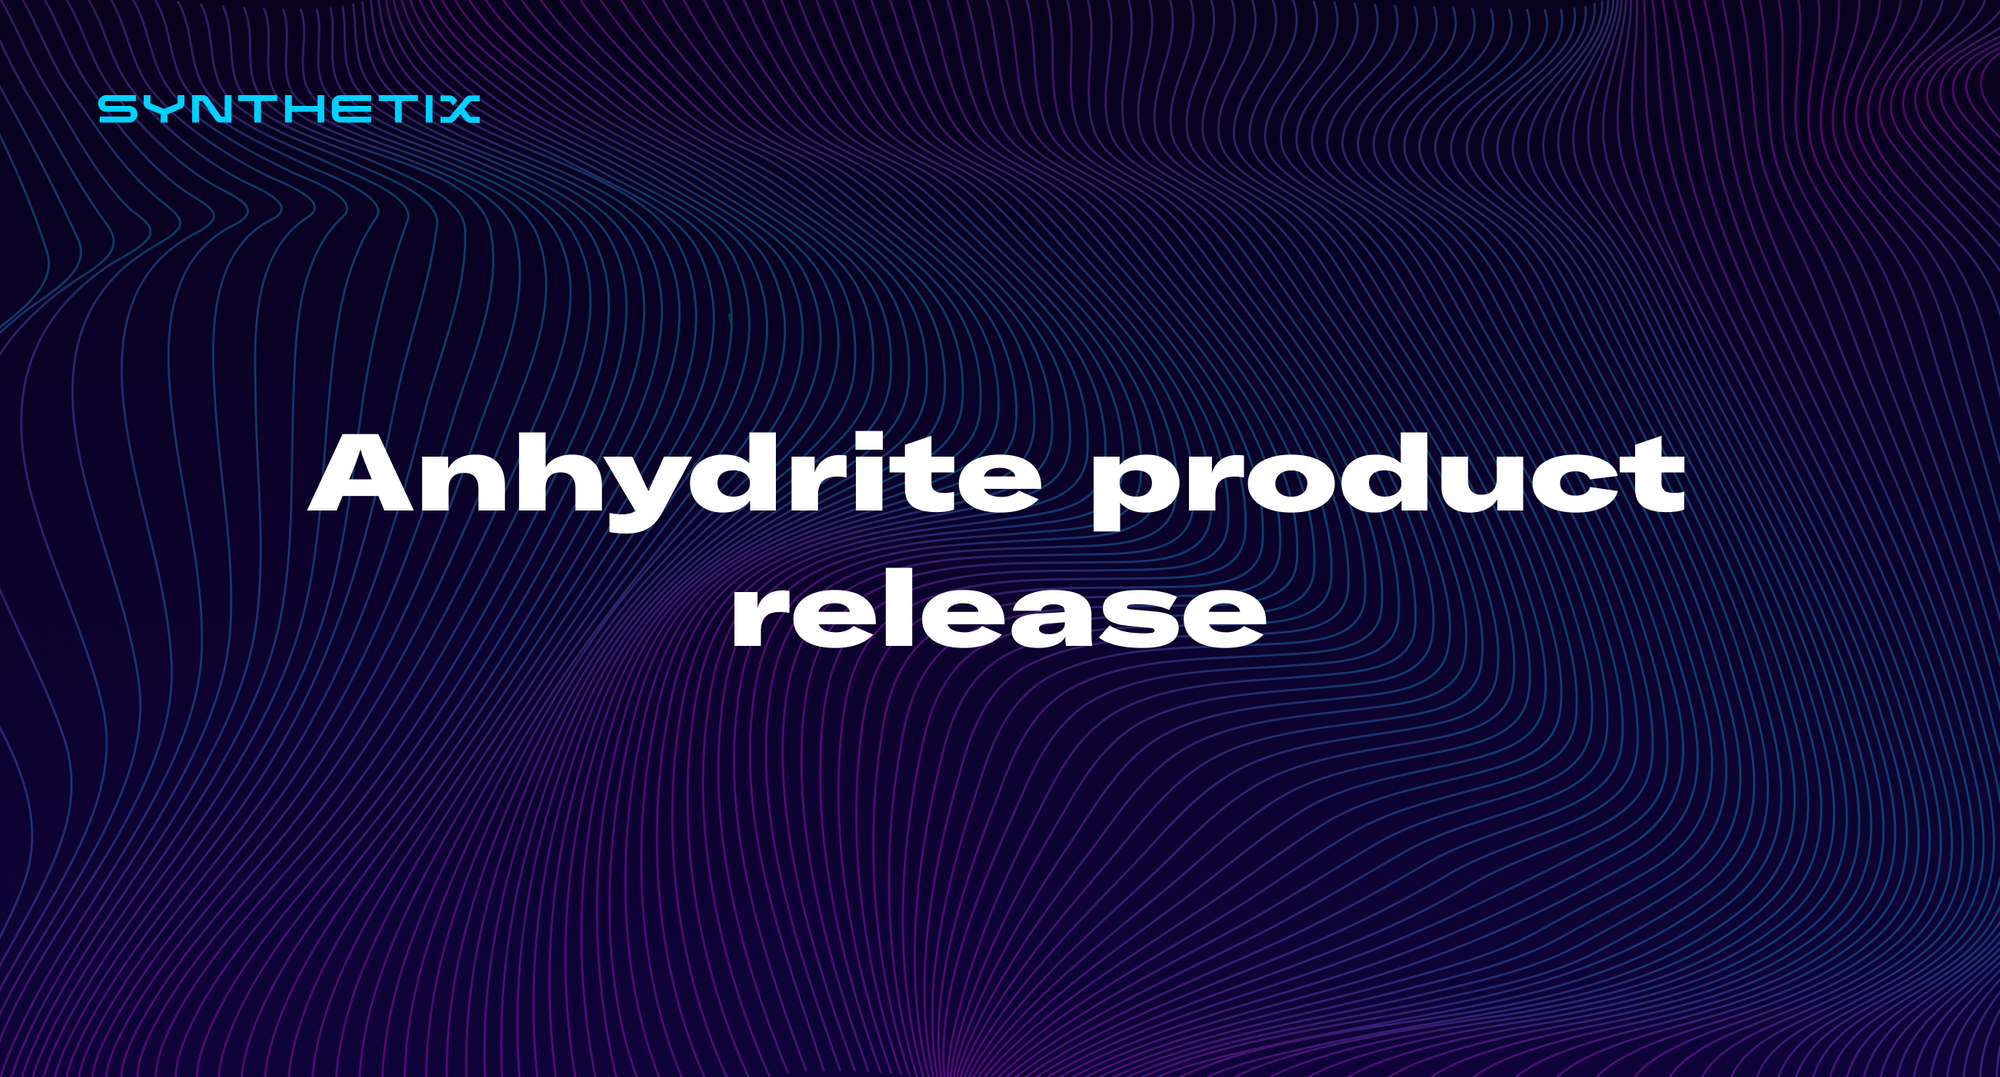 Anhydrite product release